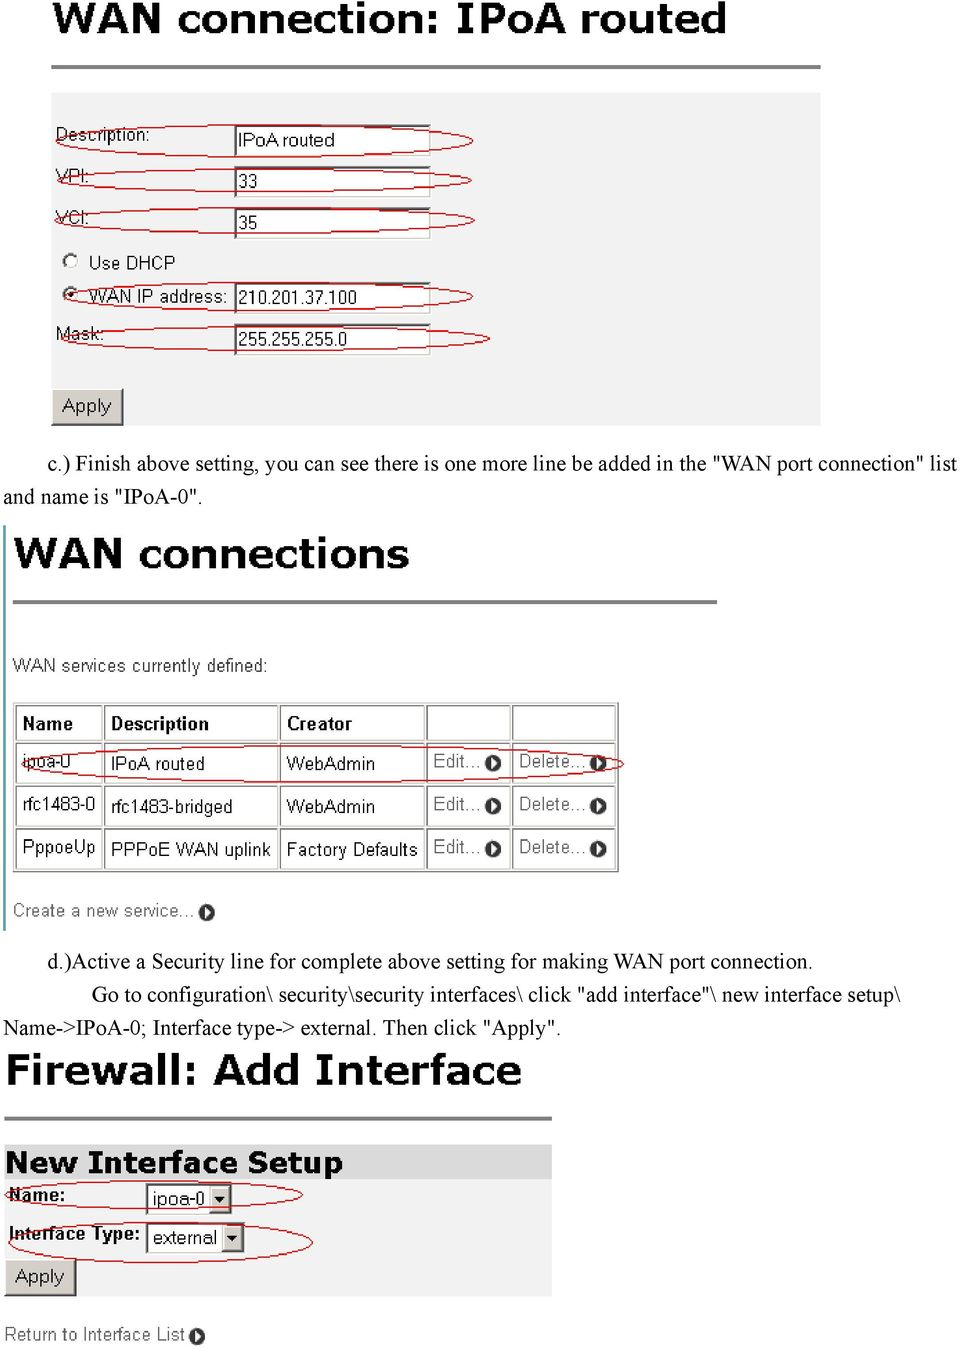 )active a Security line for complete above setting for making WAN port connection.